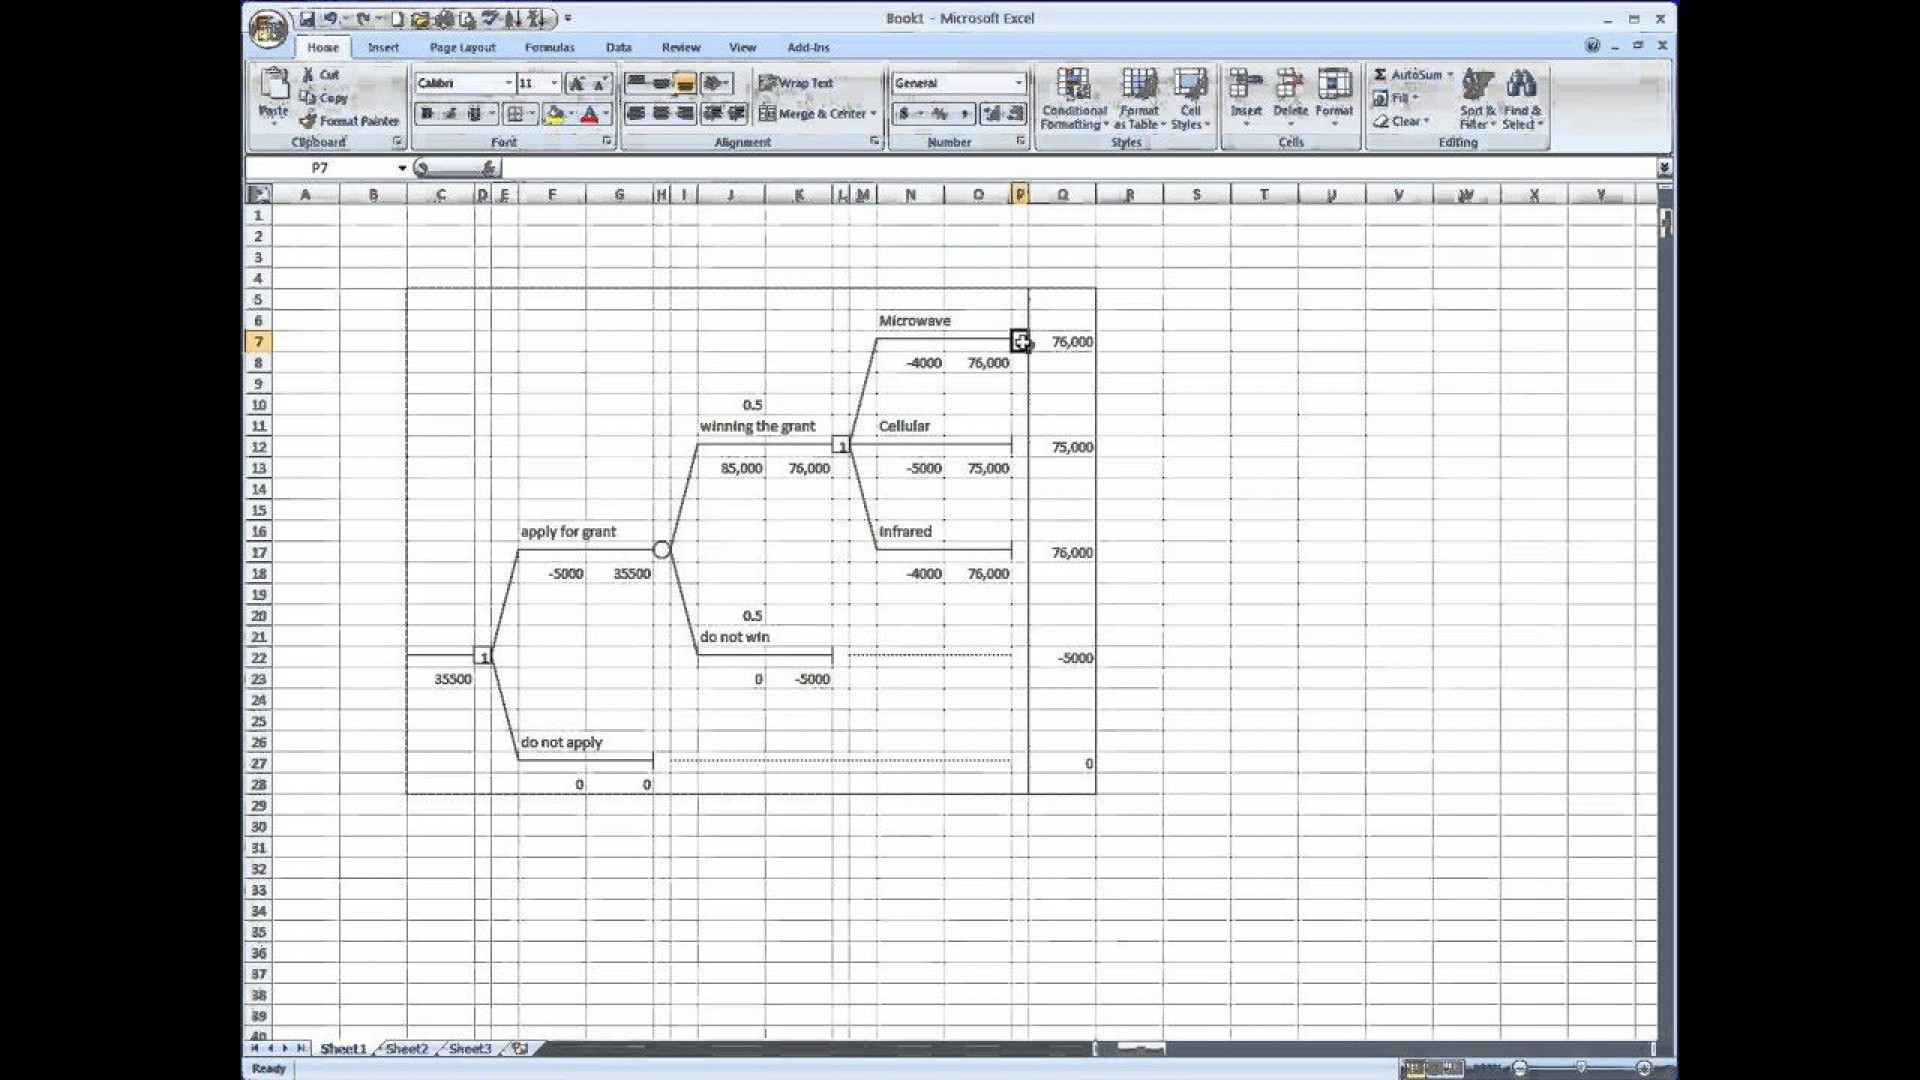 007 Impressive Decision Tree Template Excel Free High Resolution  In Word Or1920